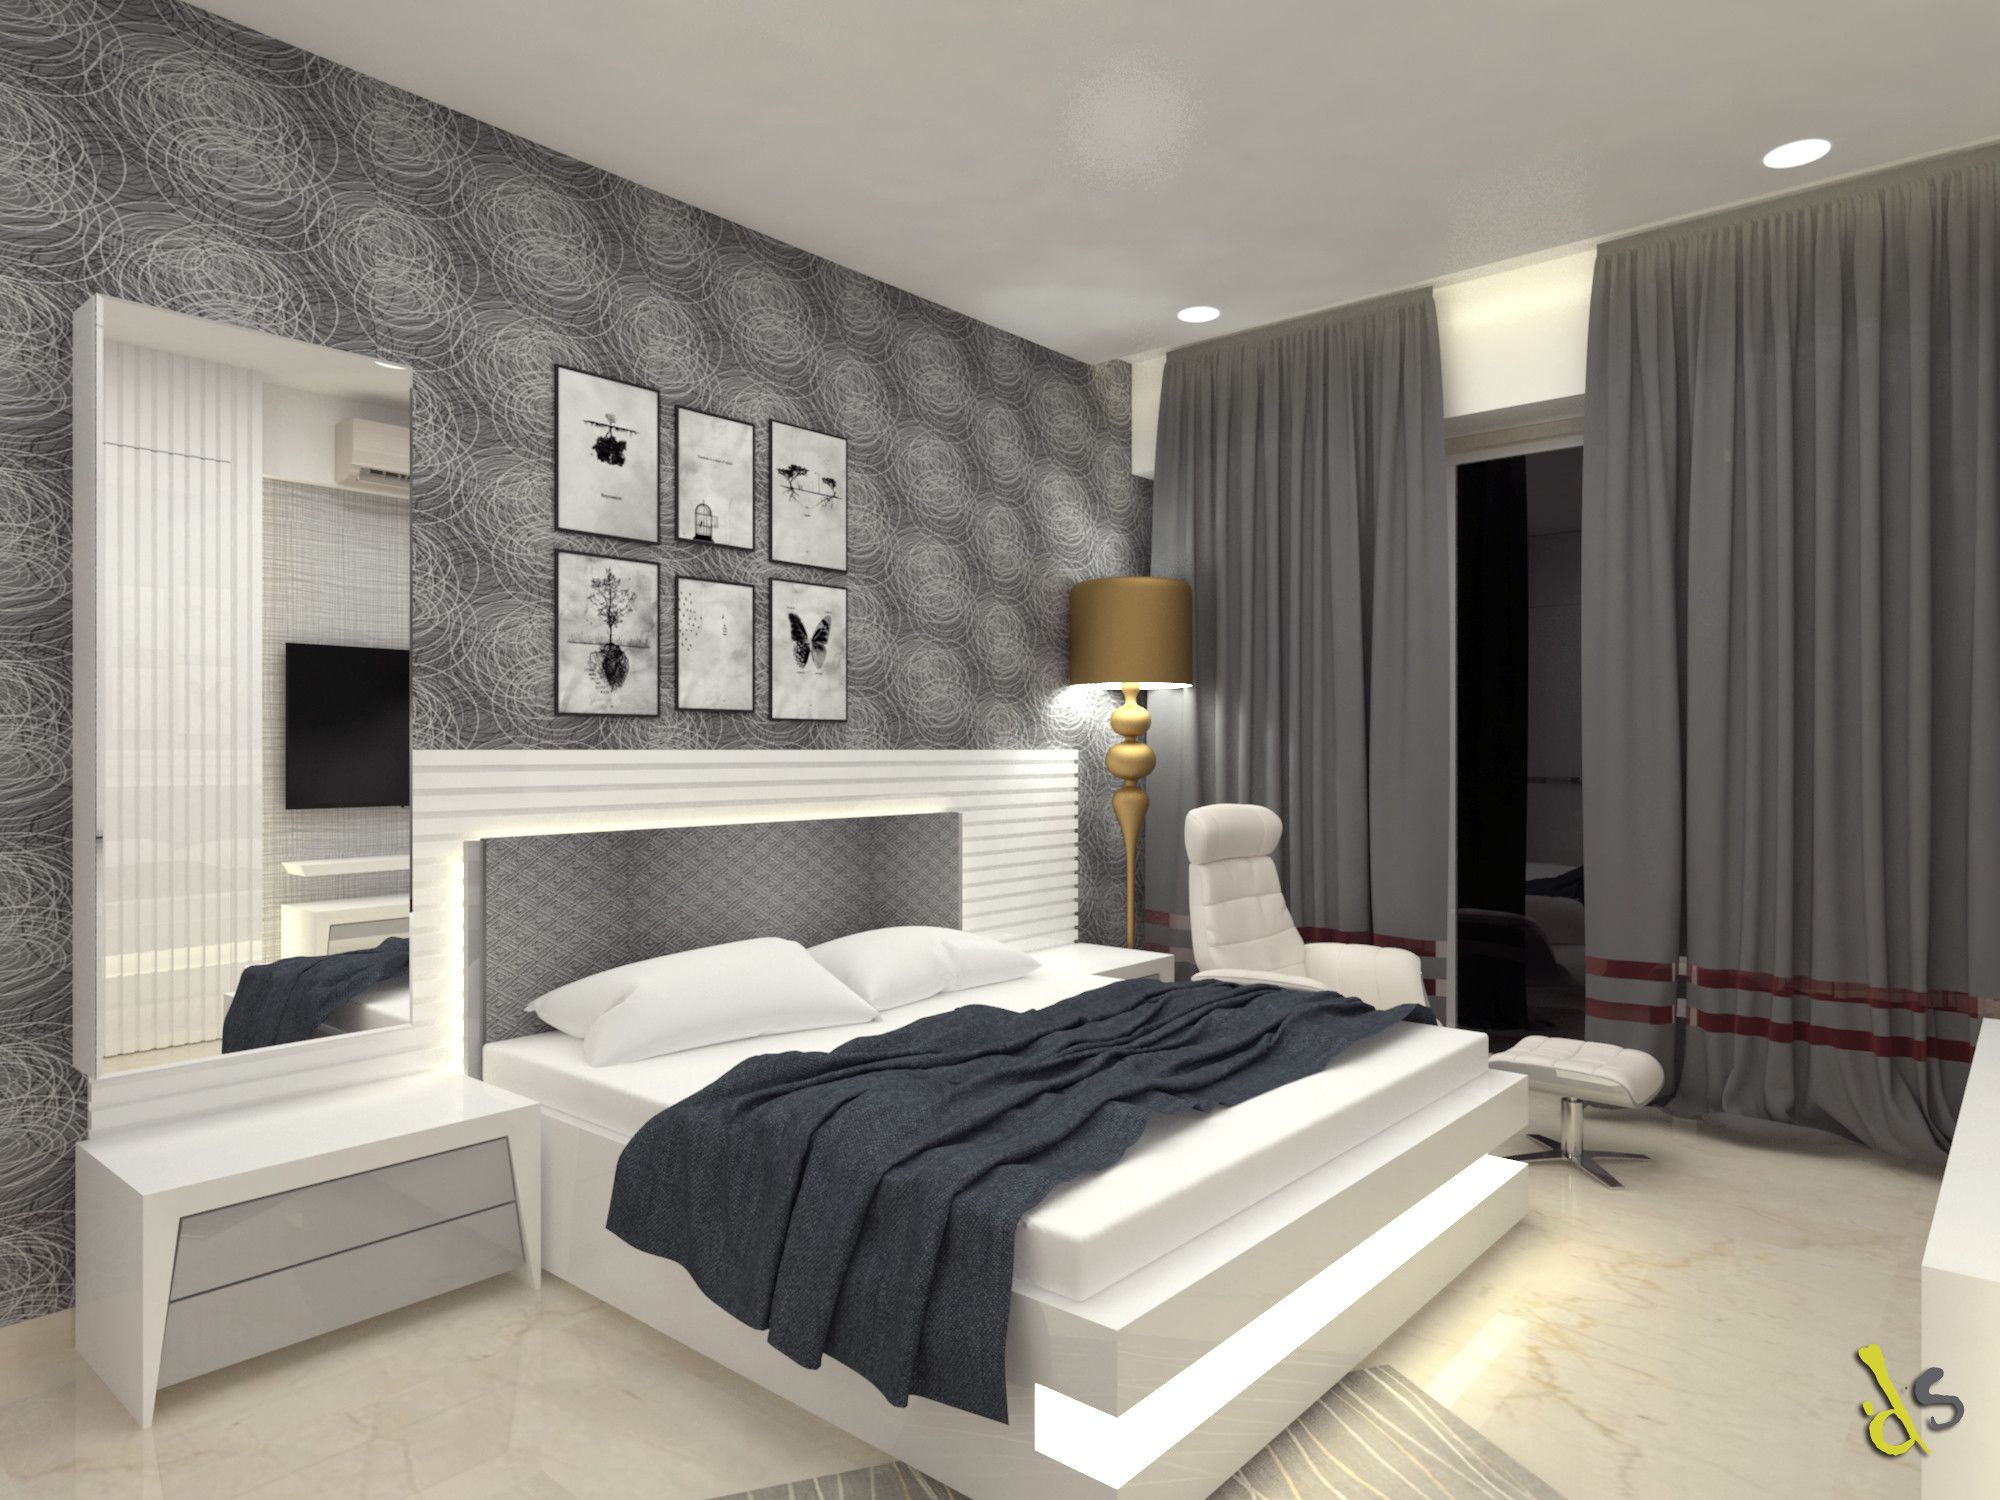 Bed Room Furnished With Grey Colored Appearance White Bed